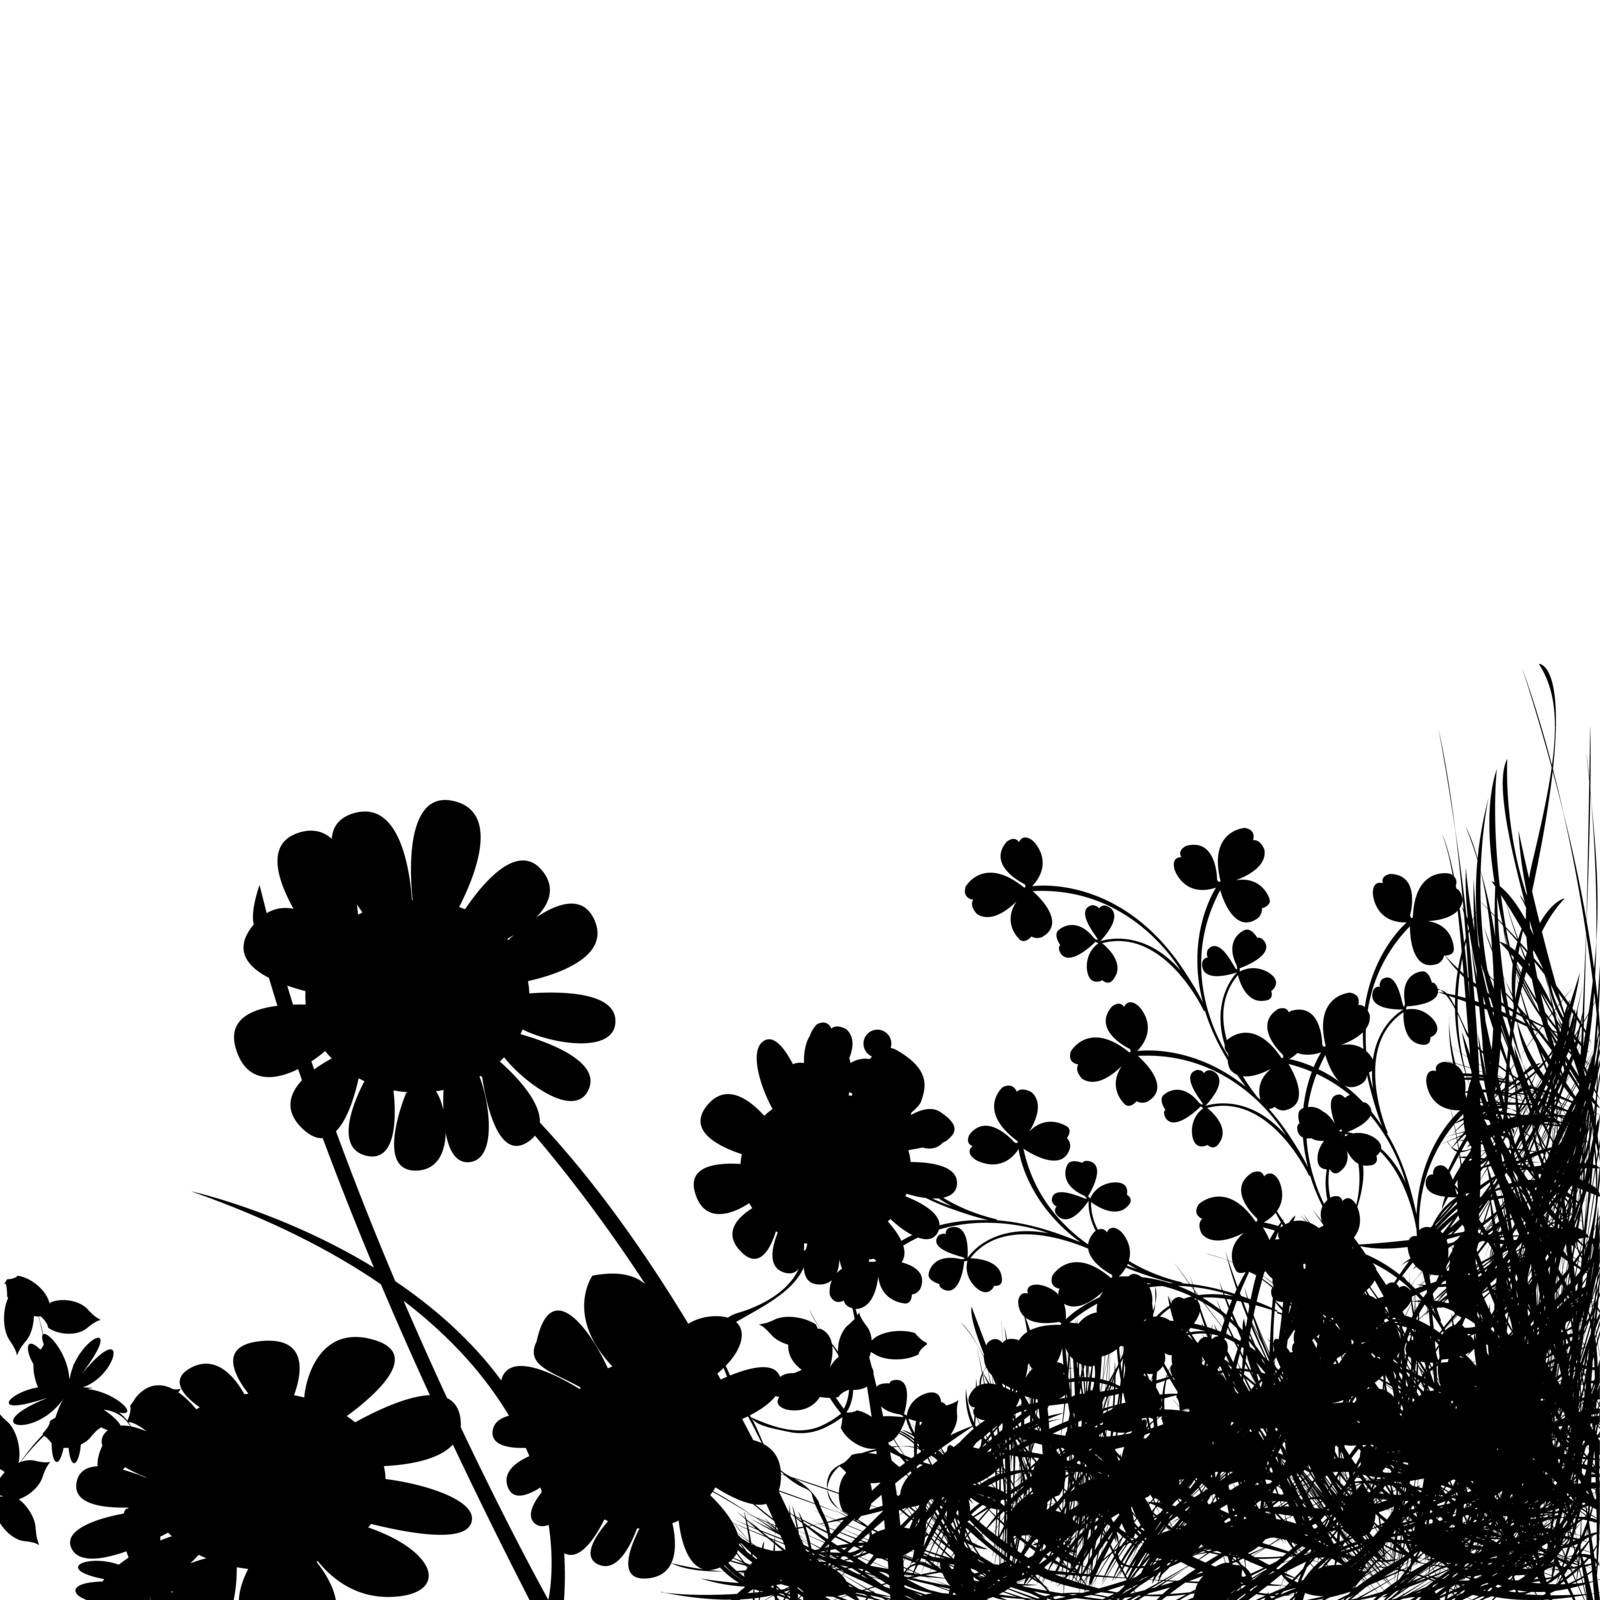 Foliage background, flowers silhouette and grass